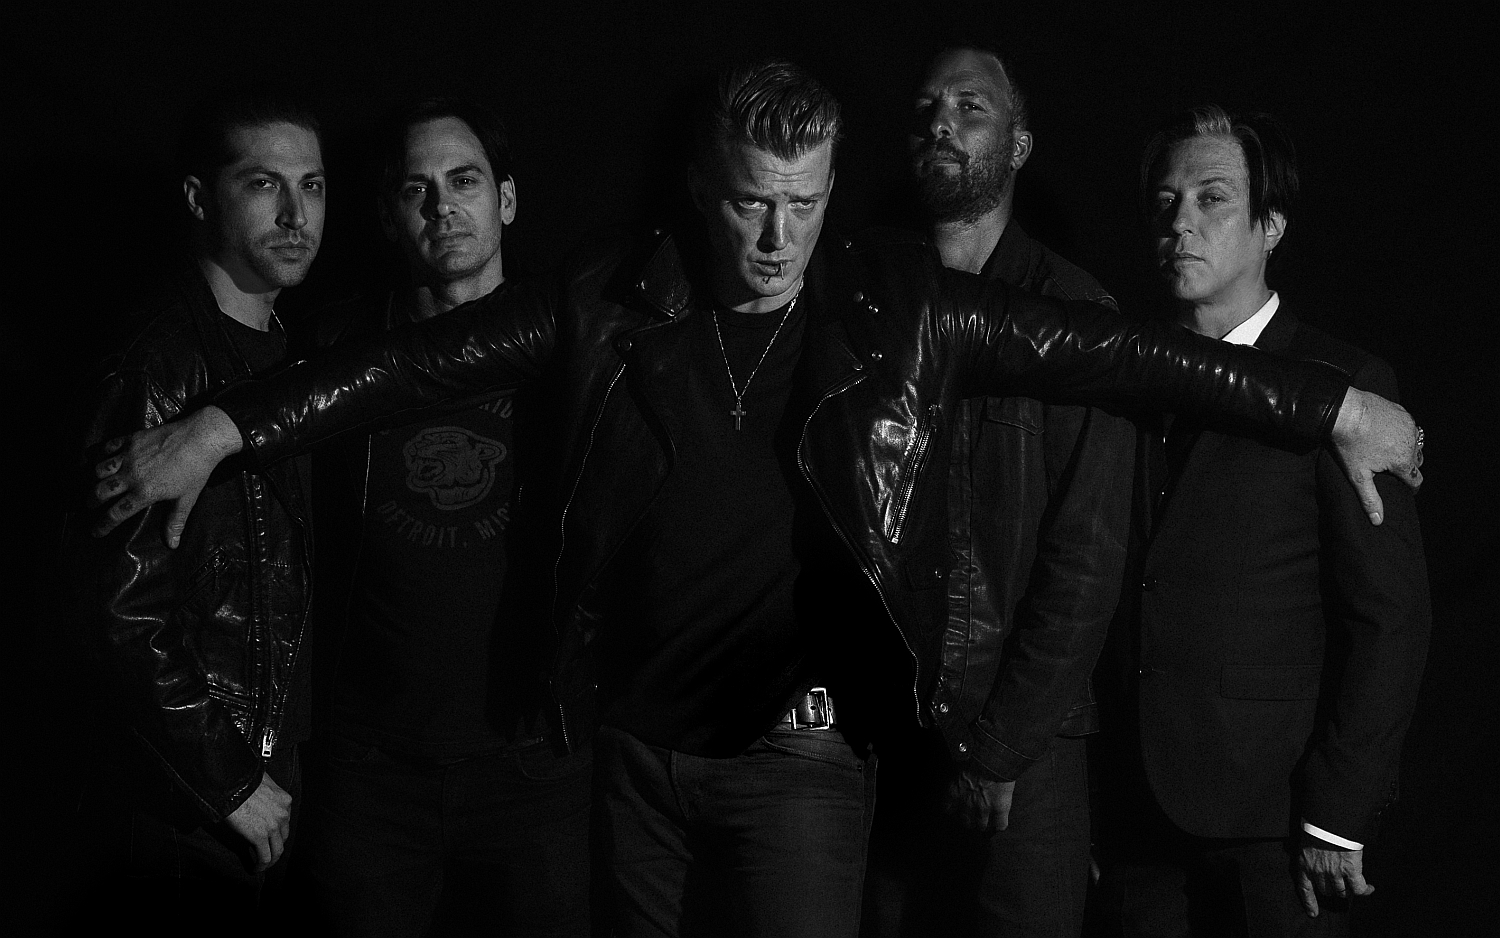 qotsa_promo_photo_credit_andres_neumann.jpg